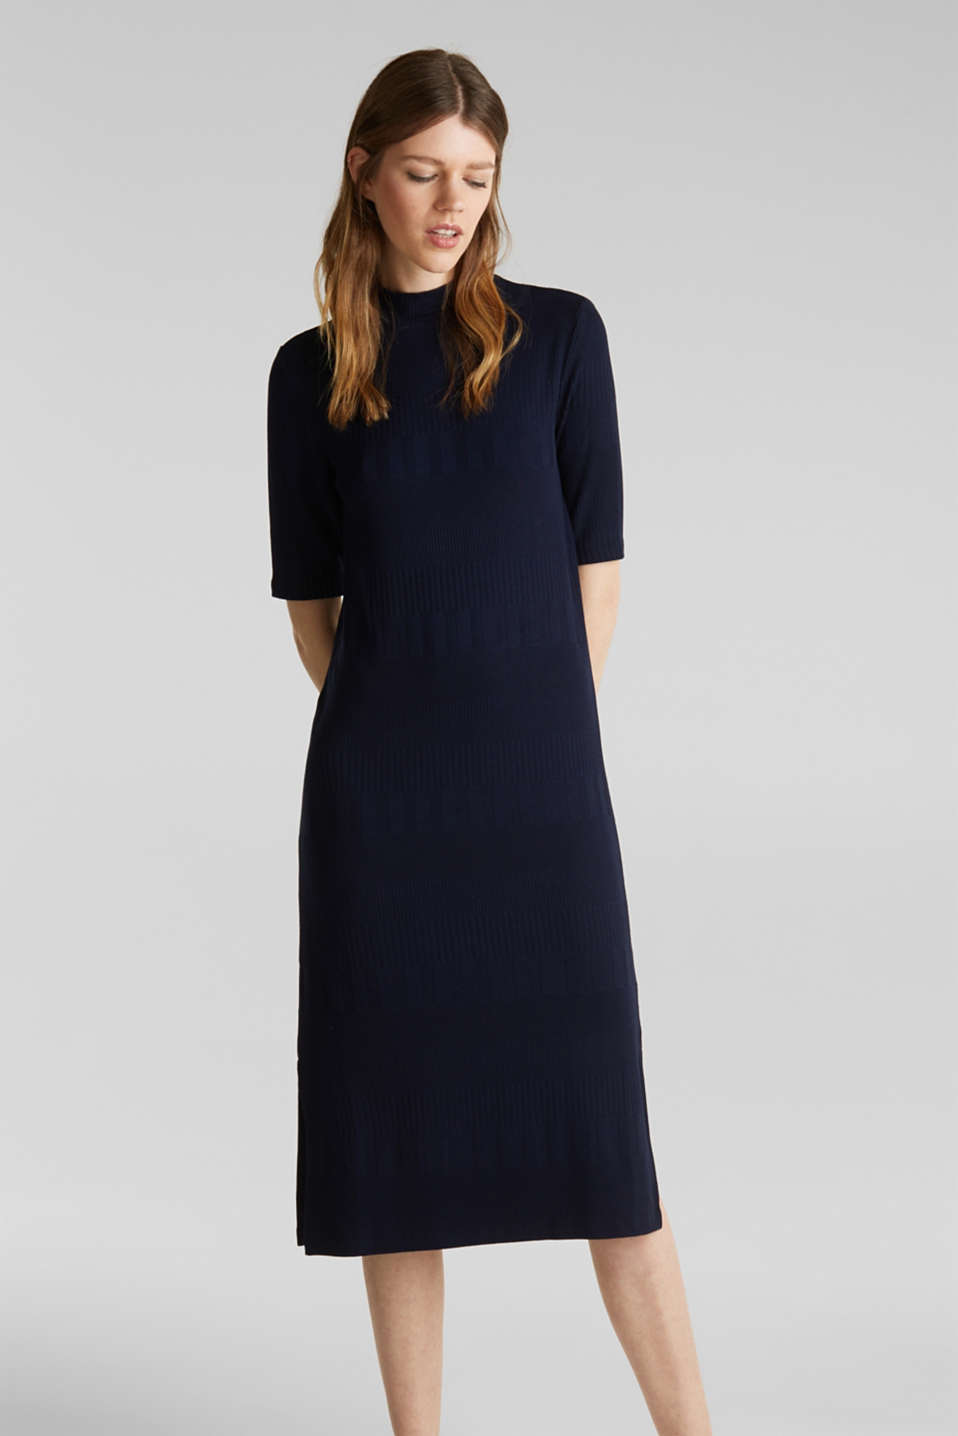 Esprit - Stretch jersey dress with texture and a stand-up collar